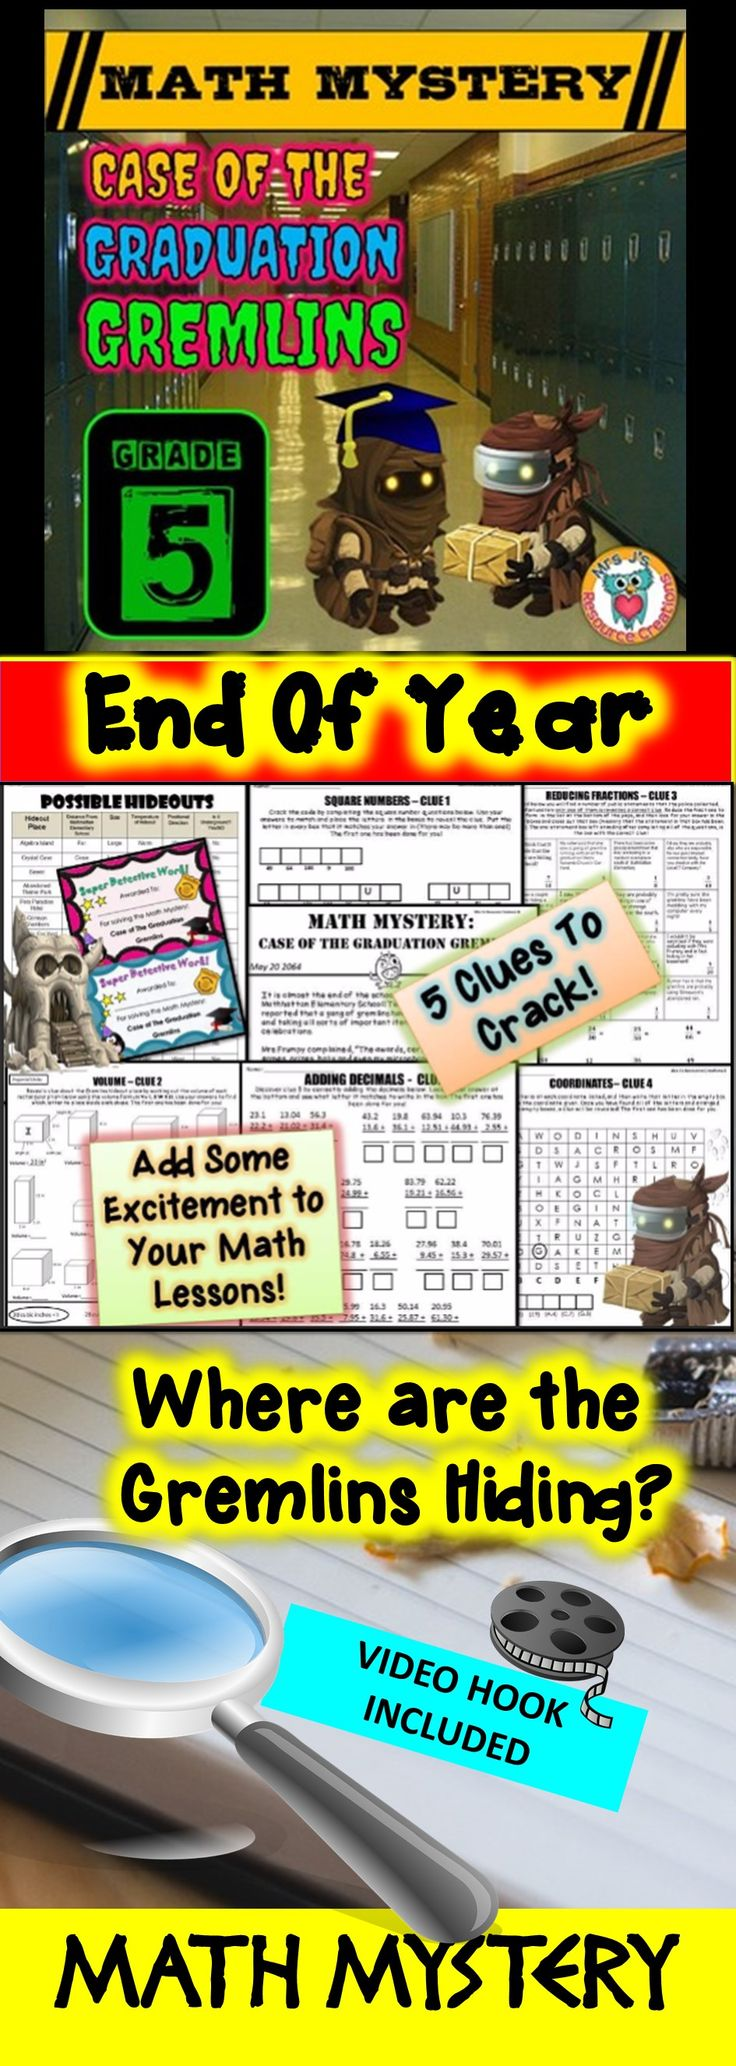 End of Year Math Mystery: Case of The Graduation Gremlins - Fifth Grade Version. Fun math review activity!